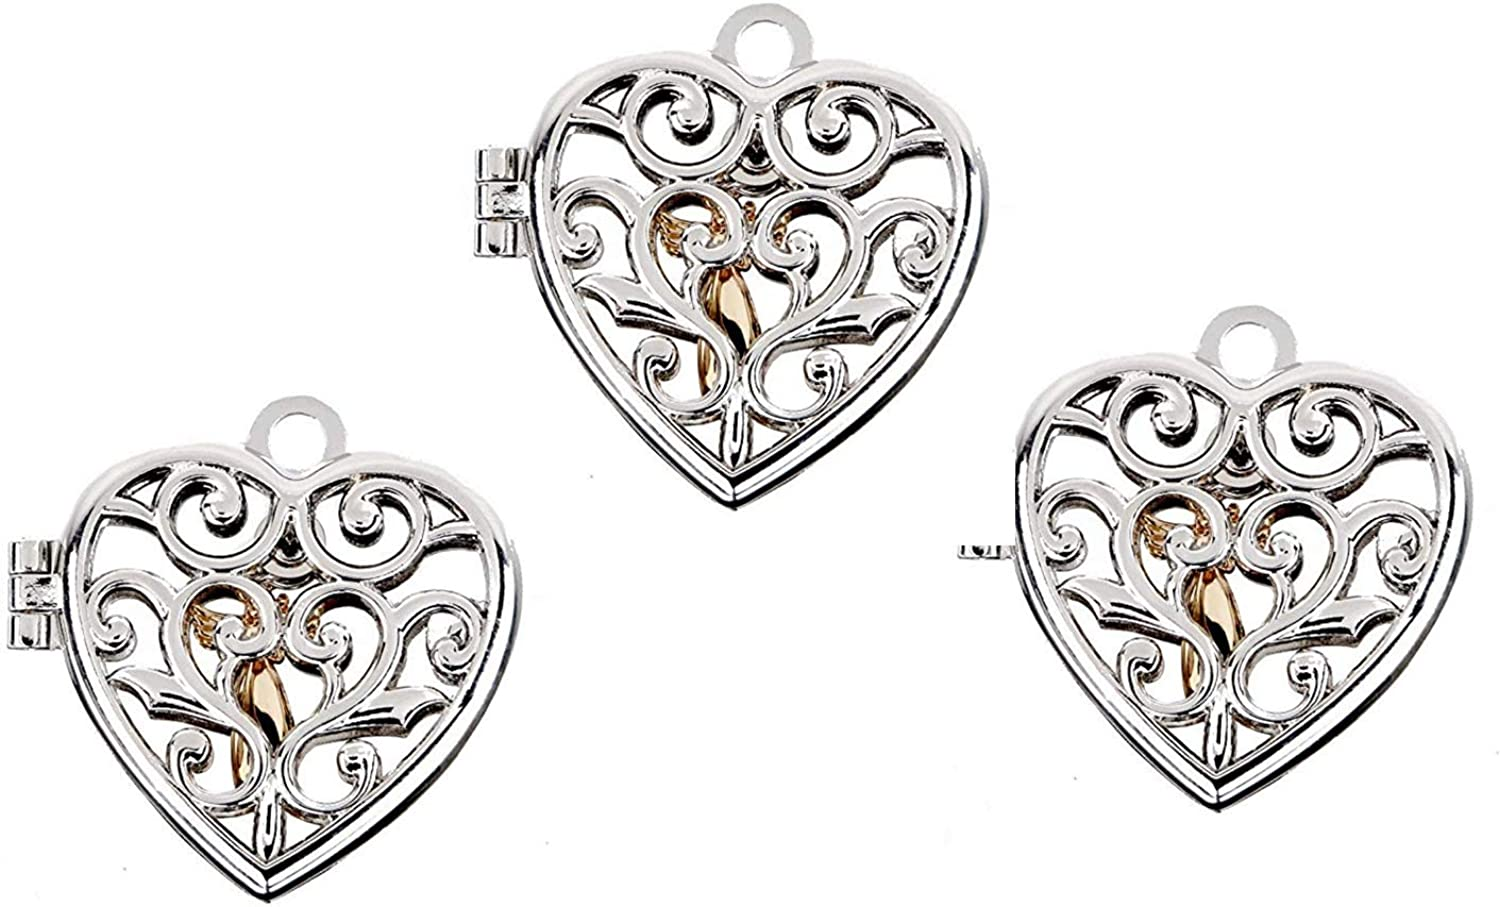 Ganz Guardian Angel of Limited time for free shipping Love Locket - 3 Heart Set Now free shipping